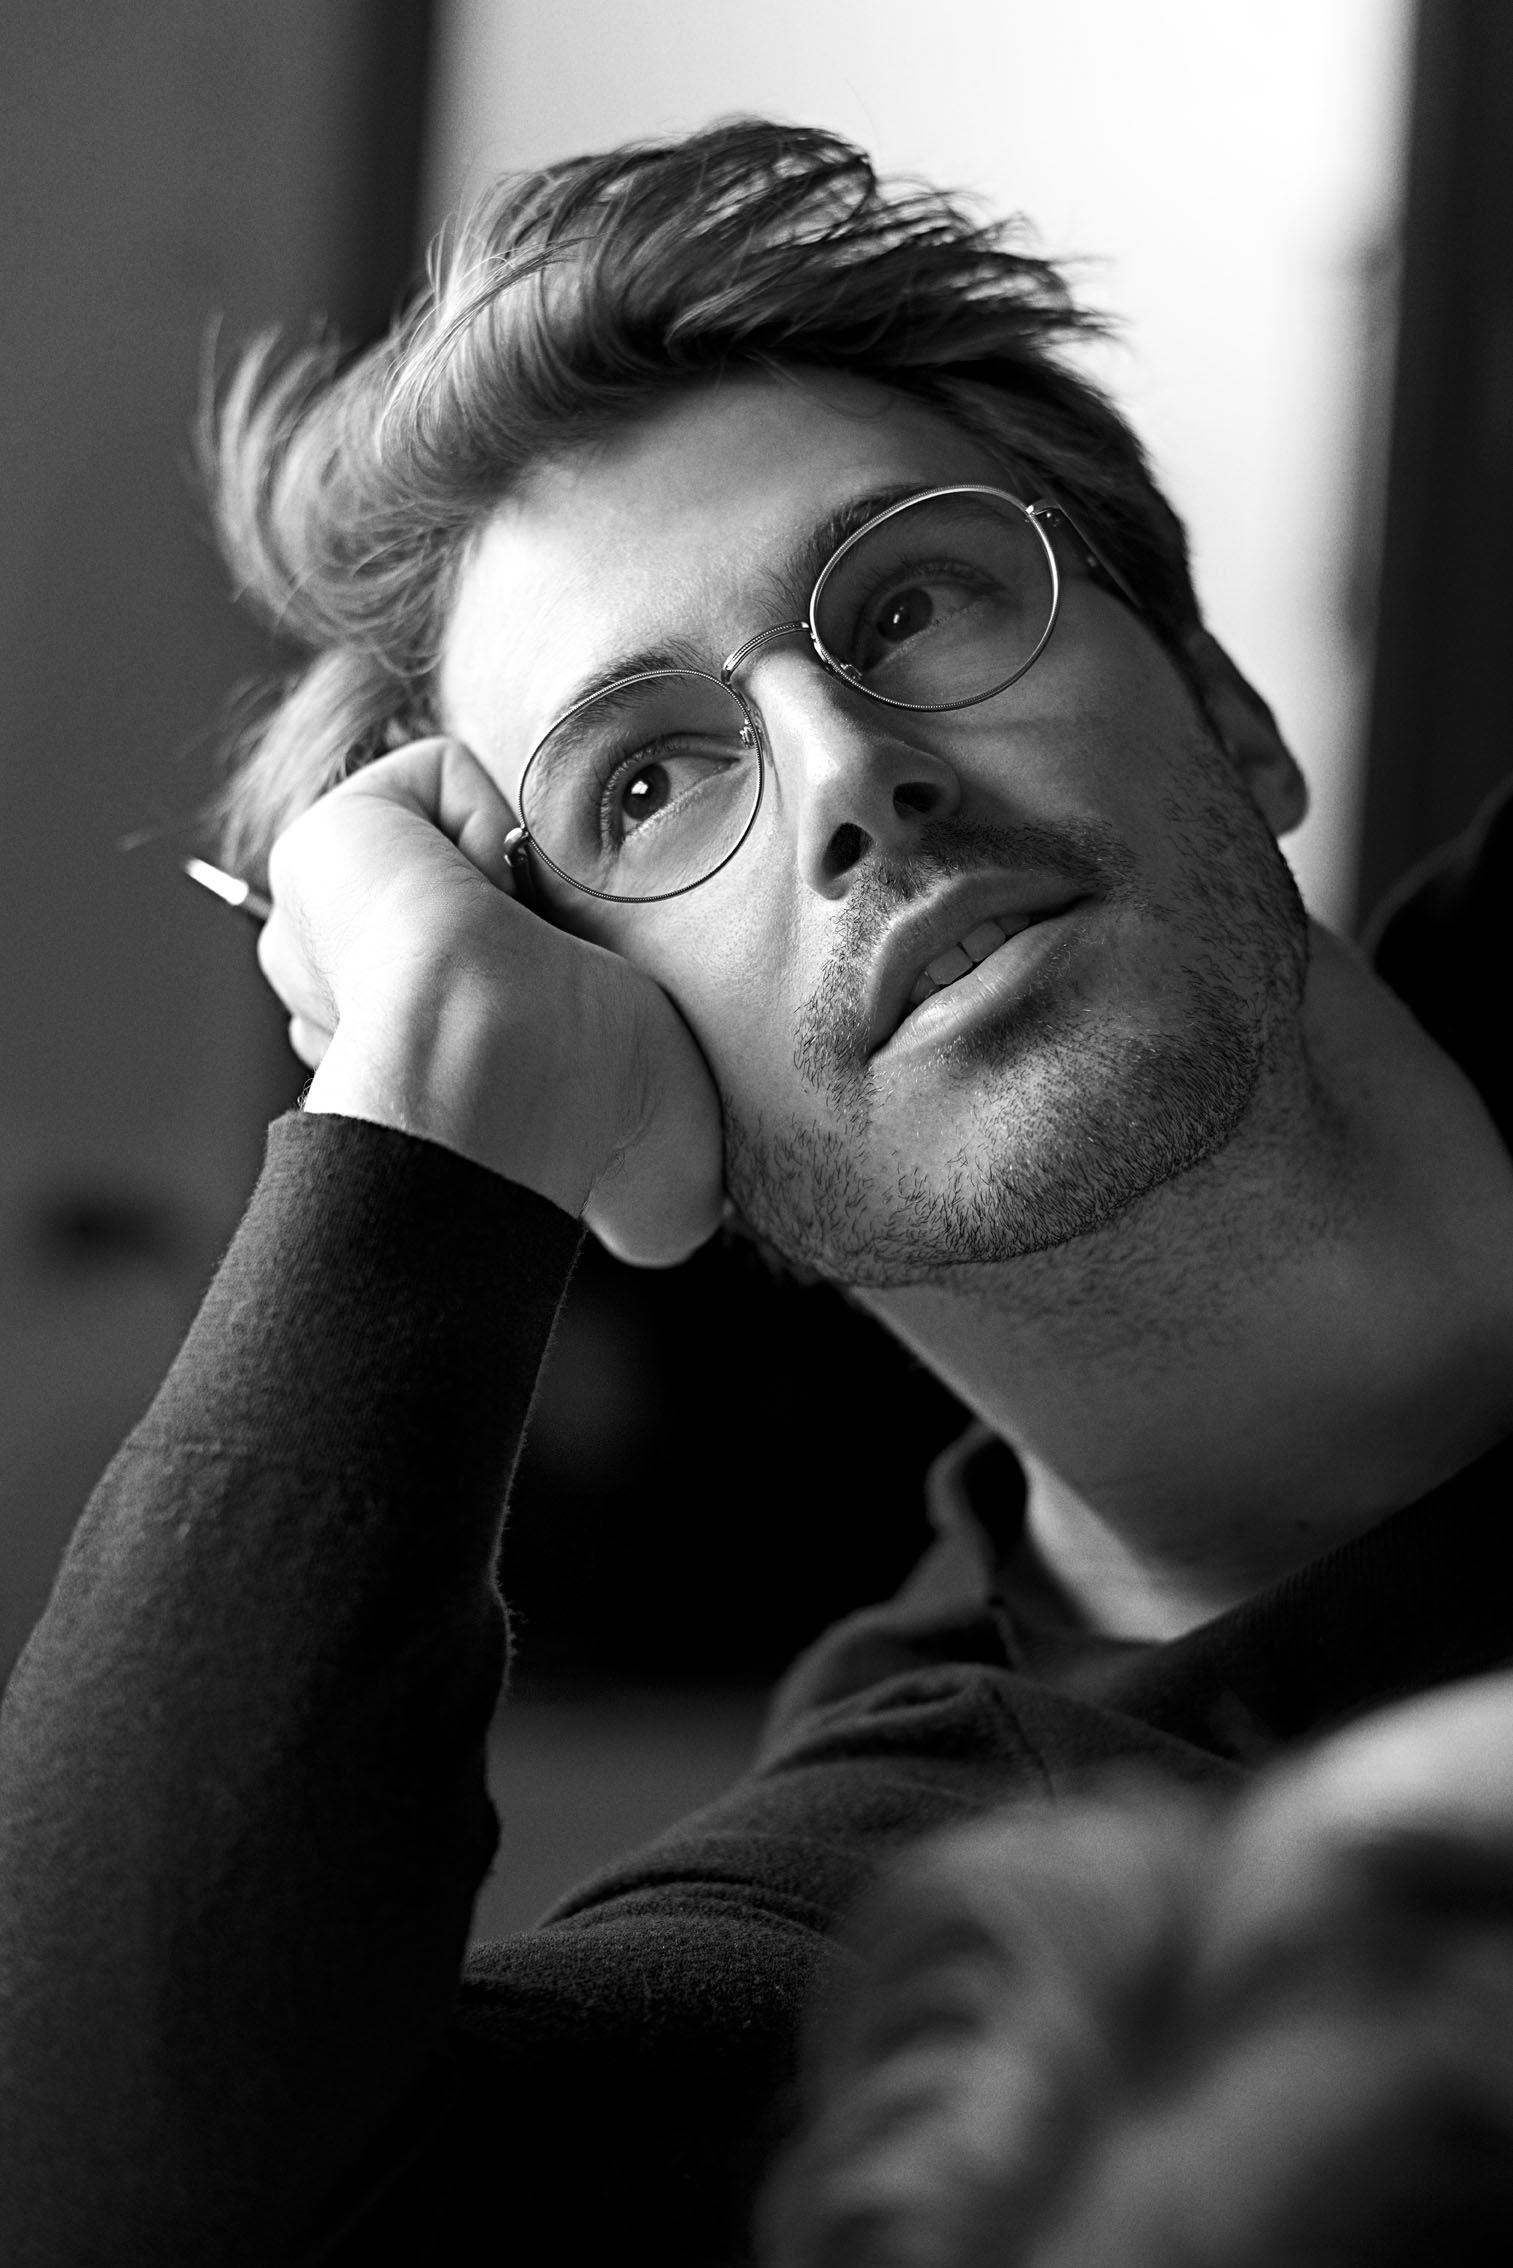 GIORGIO ARMANI FRAMES OF LIFE 2013  The Architects Choice. Adrian, being an  architect, opts for a refined, structured model that reflects his attention  to ... 873ae38e3d50